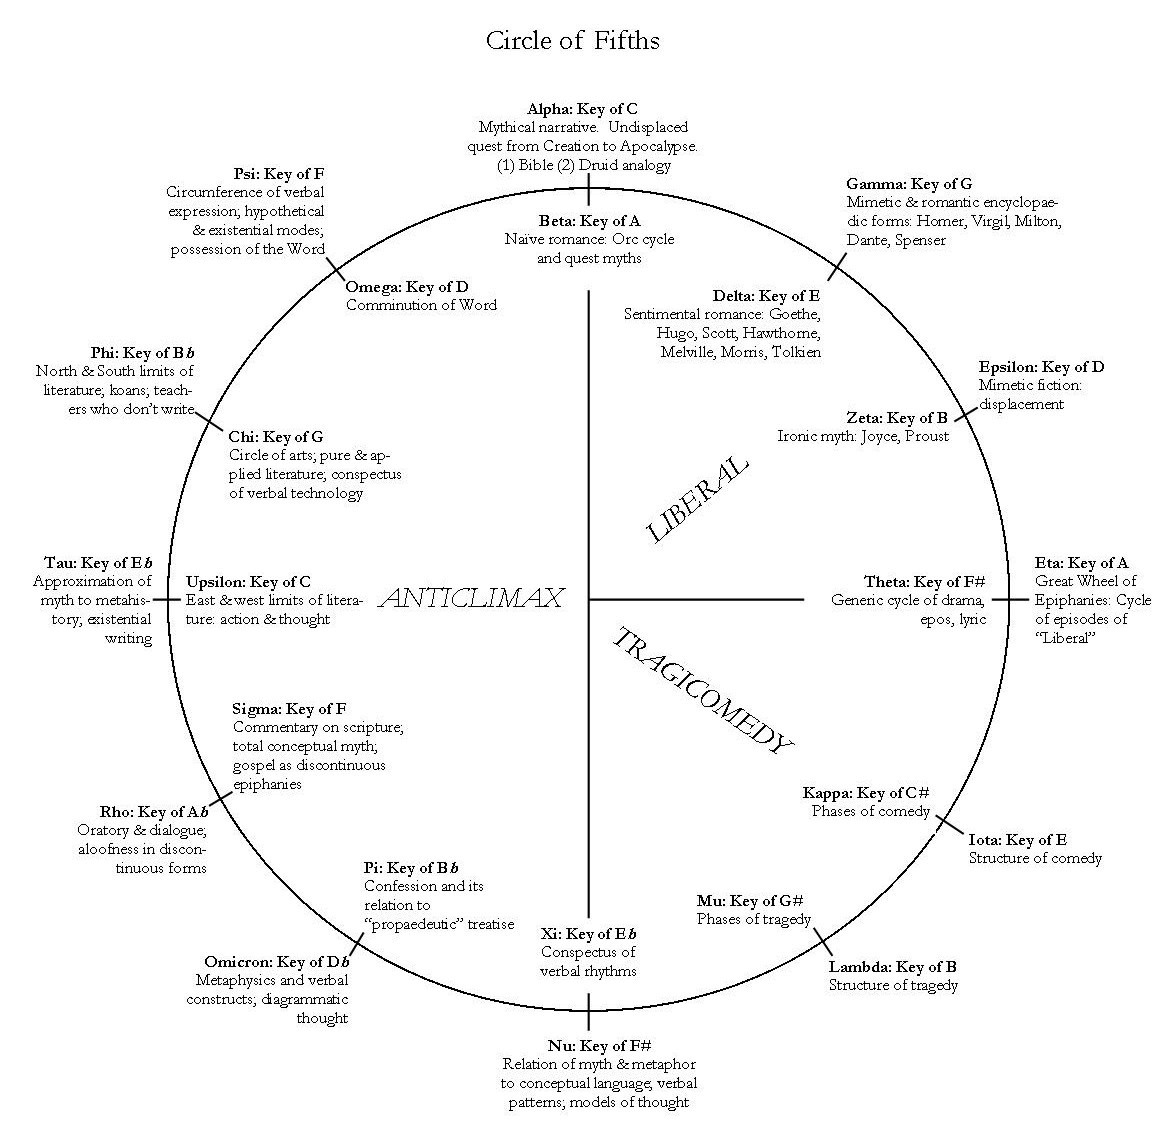 AC.circle of fifths